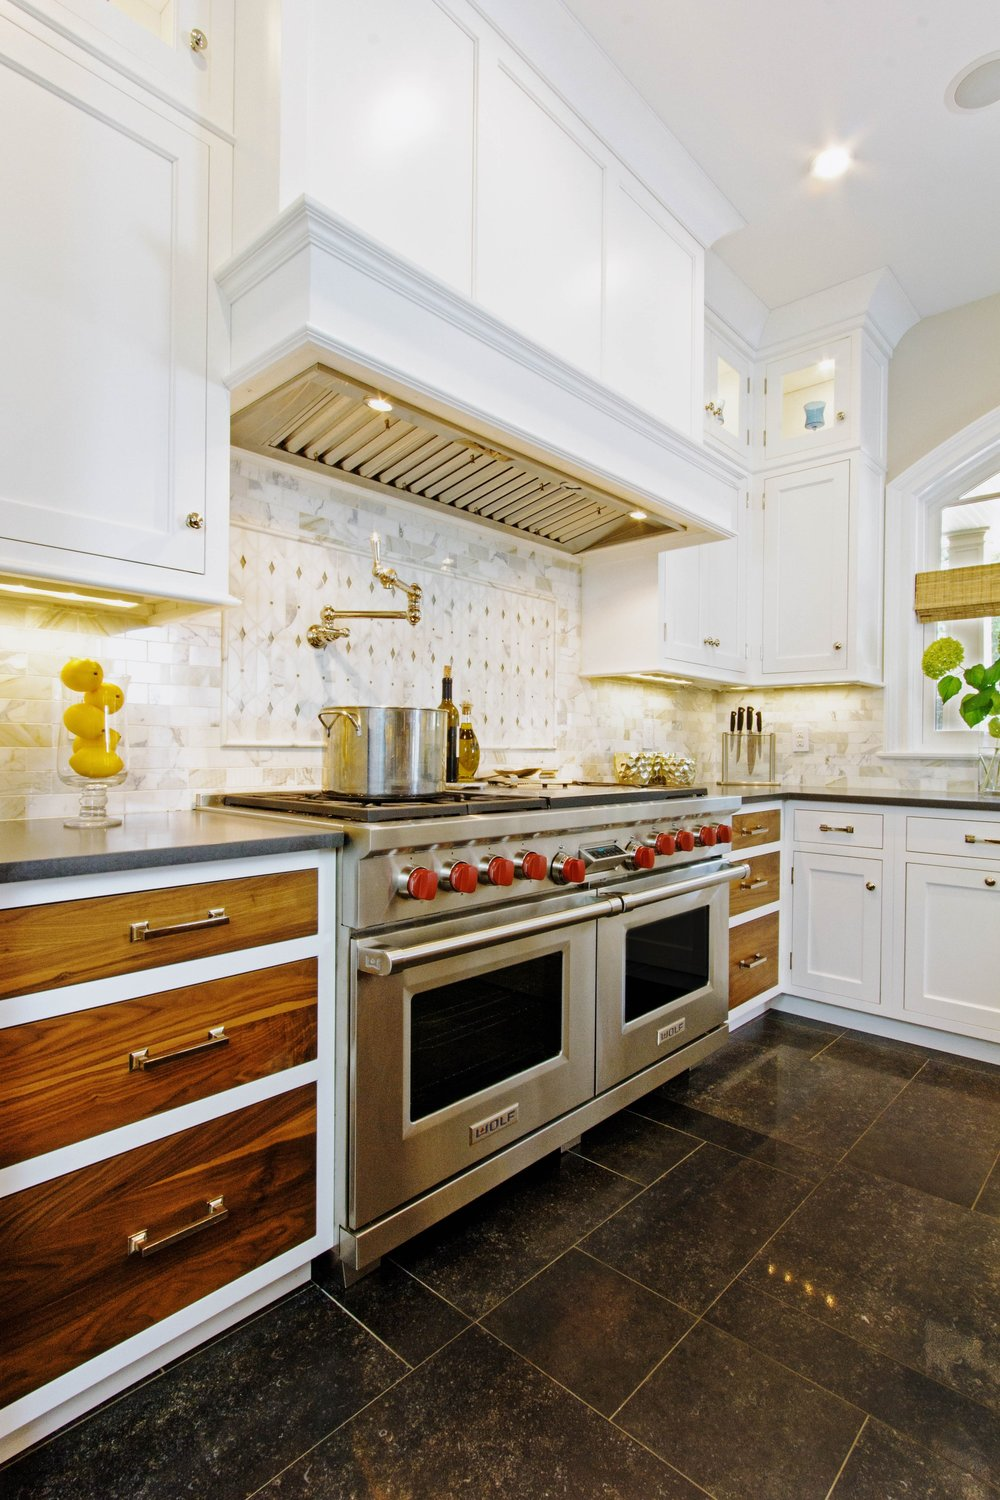 Transitional style kitchen with stainless steel range oven